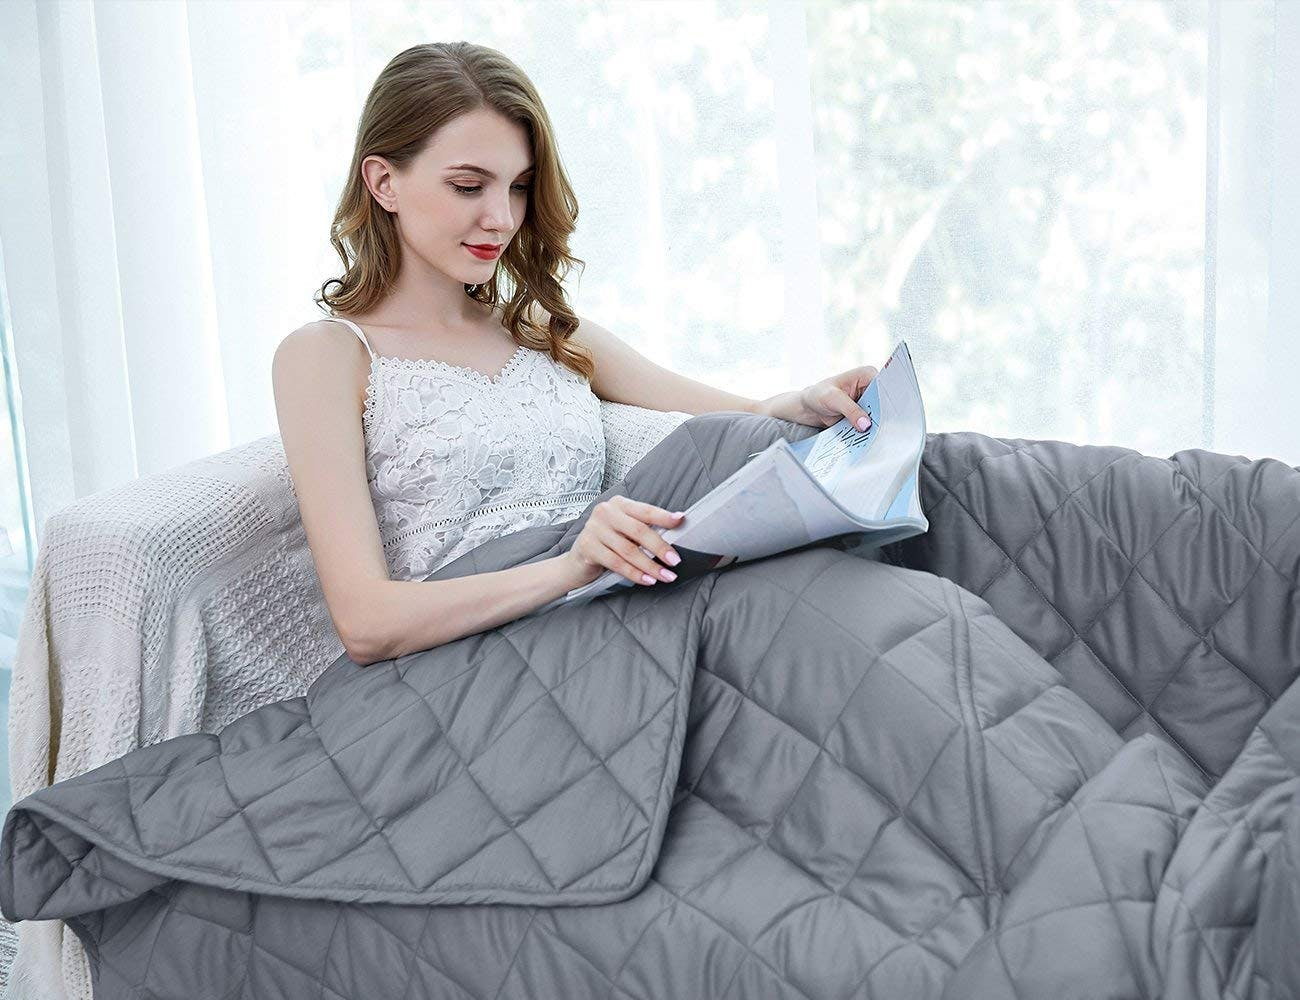 cozy, blanket, weighted blanket, technology, bedding, Valentine's Day, love, sleep